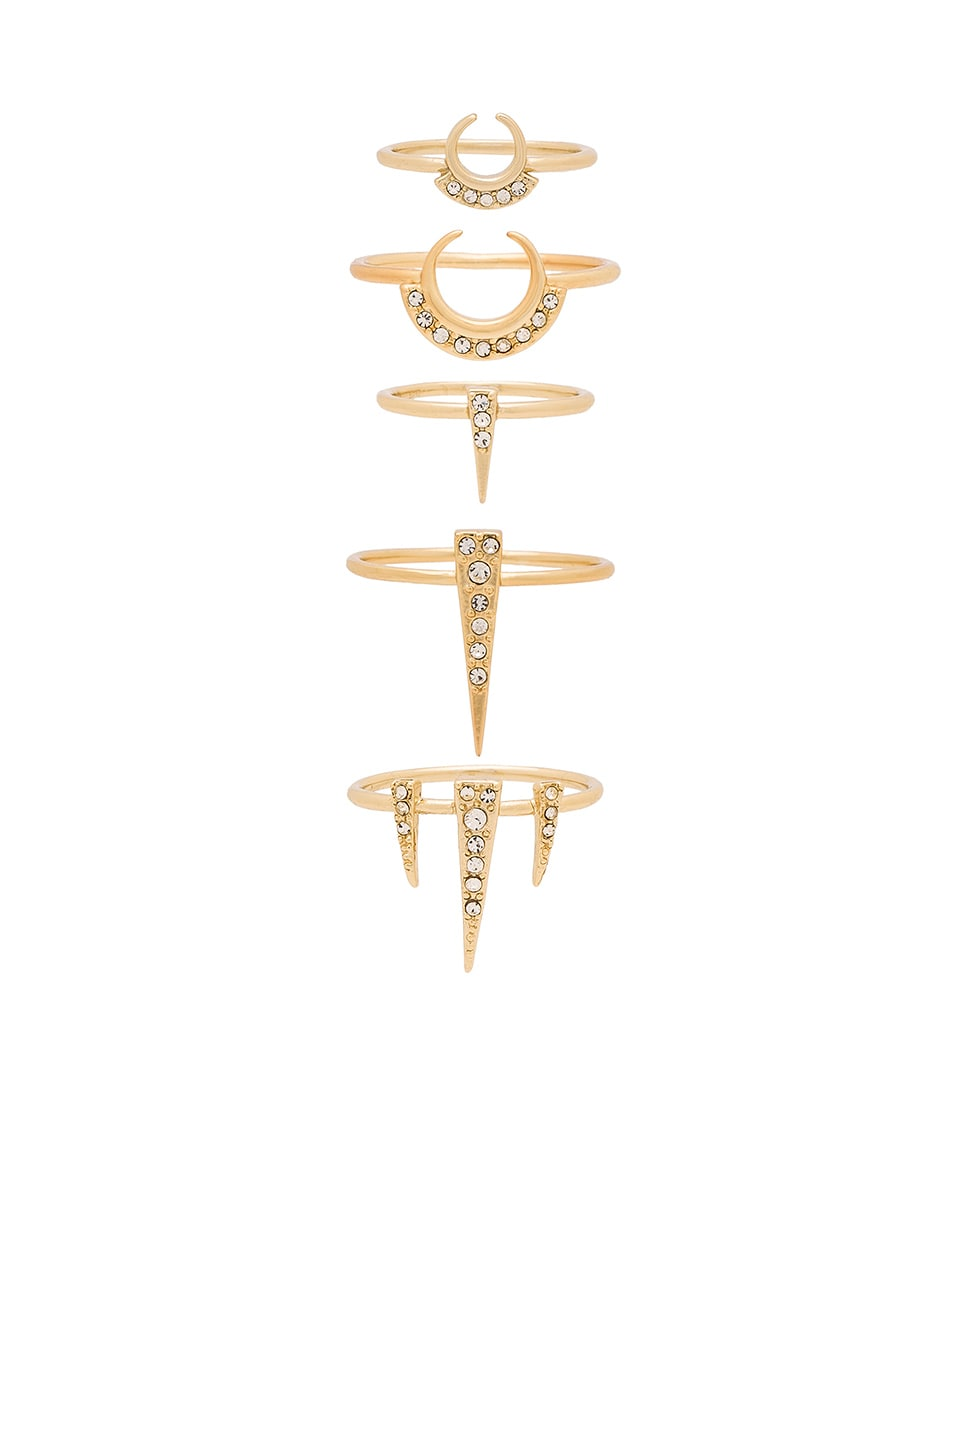 Luv AJ Crescent Spike Ring Set of 5 in Antique Gold